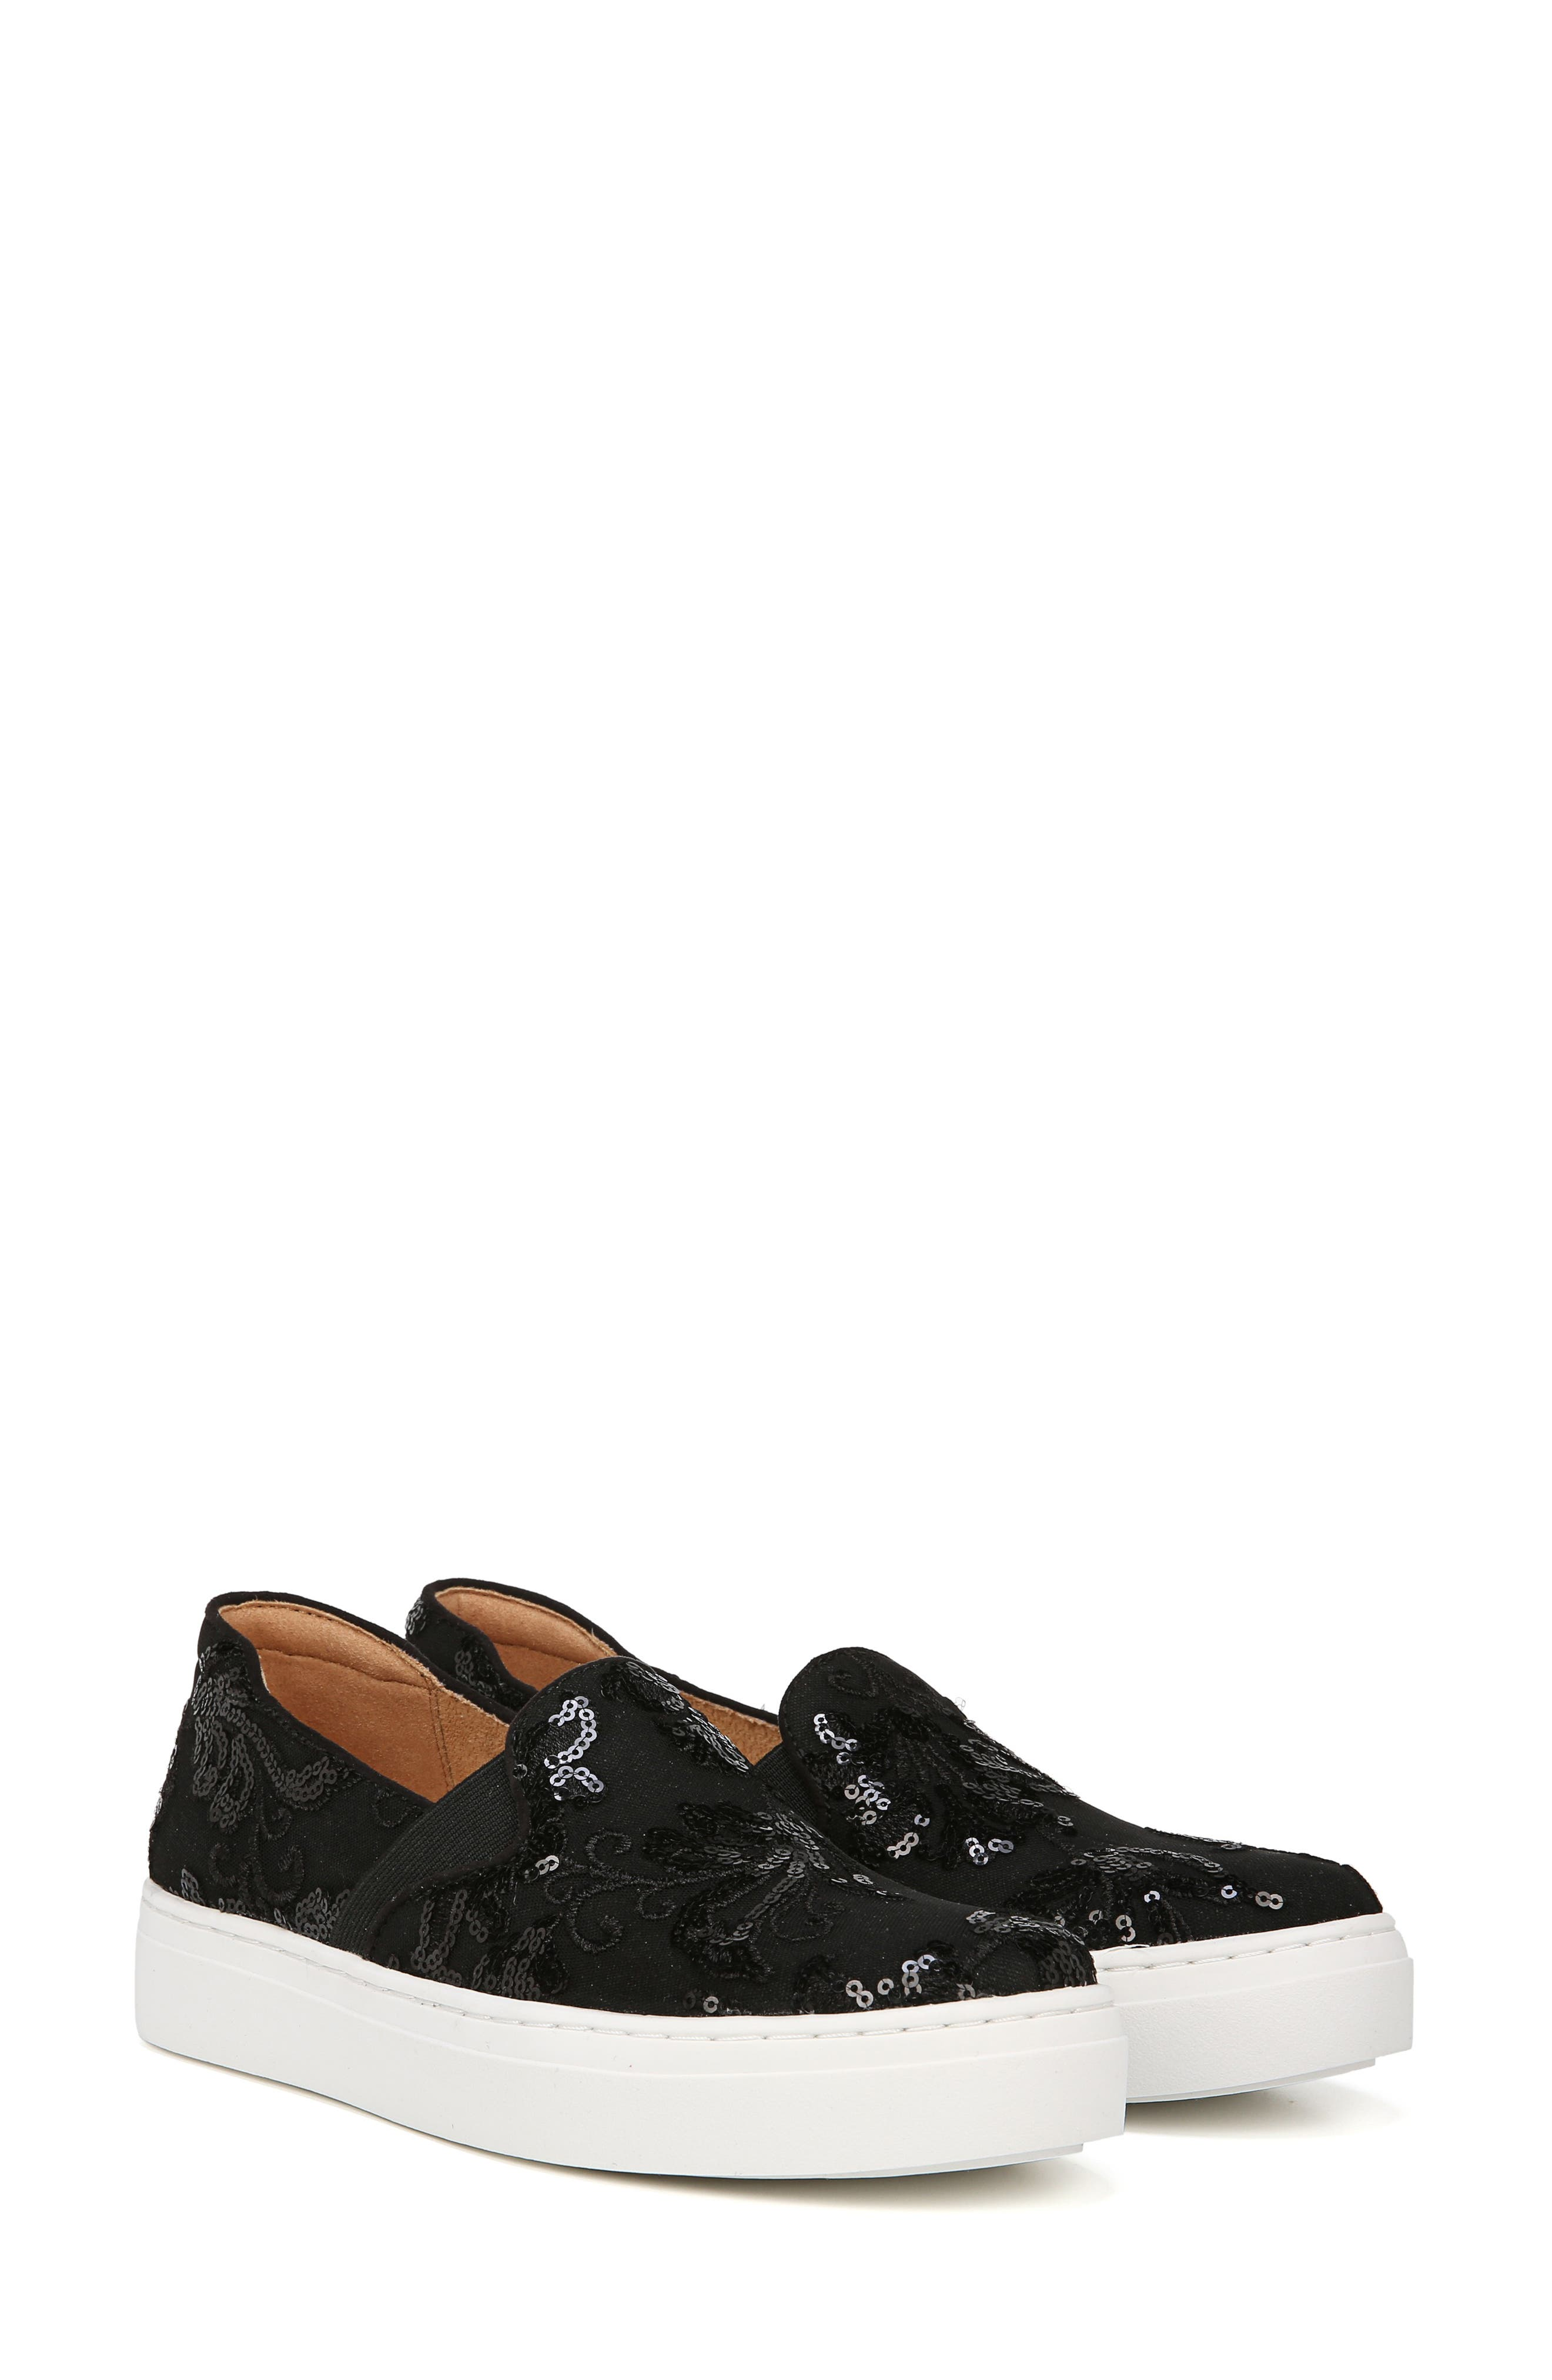 NATURALIZER, Carly Slip-On Sneaker, Alternate thumbnail 9, color, BLACK EMBROIDERED LACE